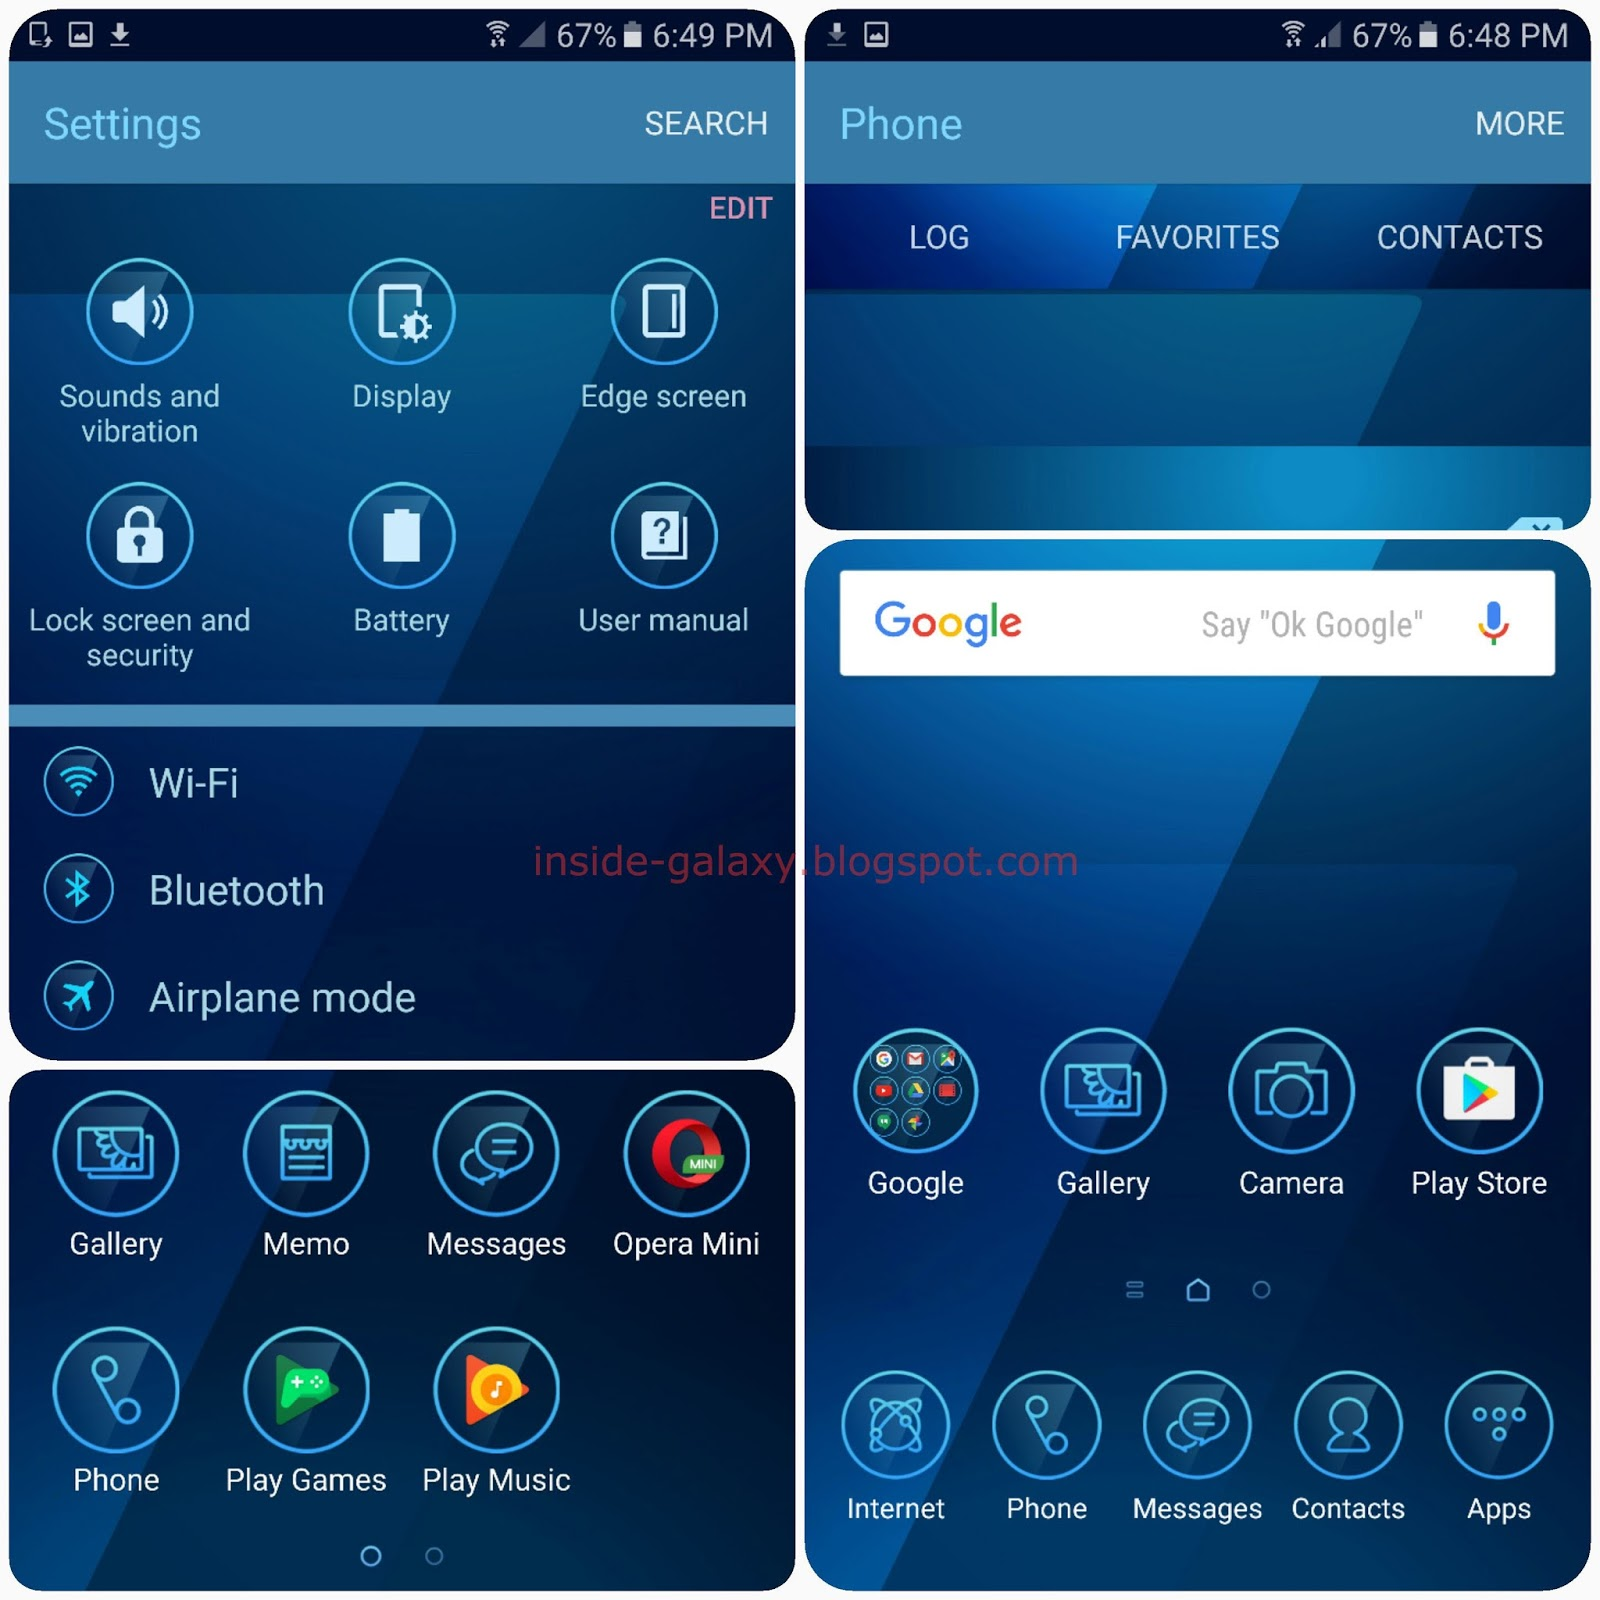 Samsung galaxy s7 edge themes | How To Download Samsung Galaxy S7